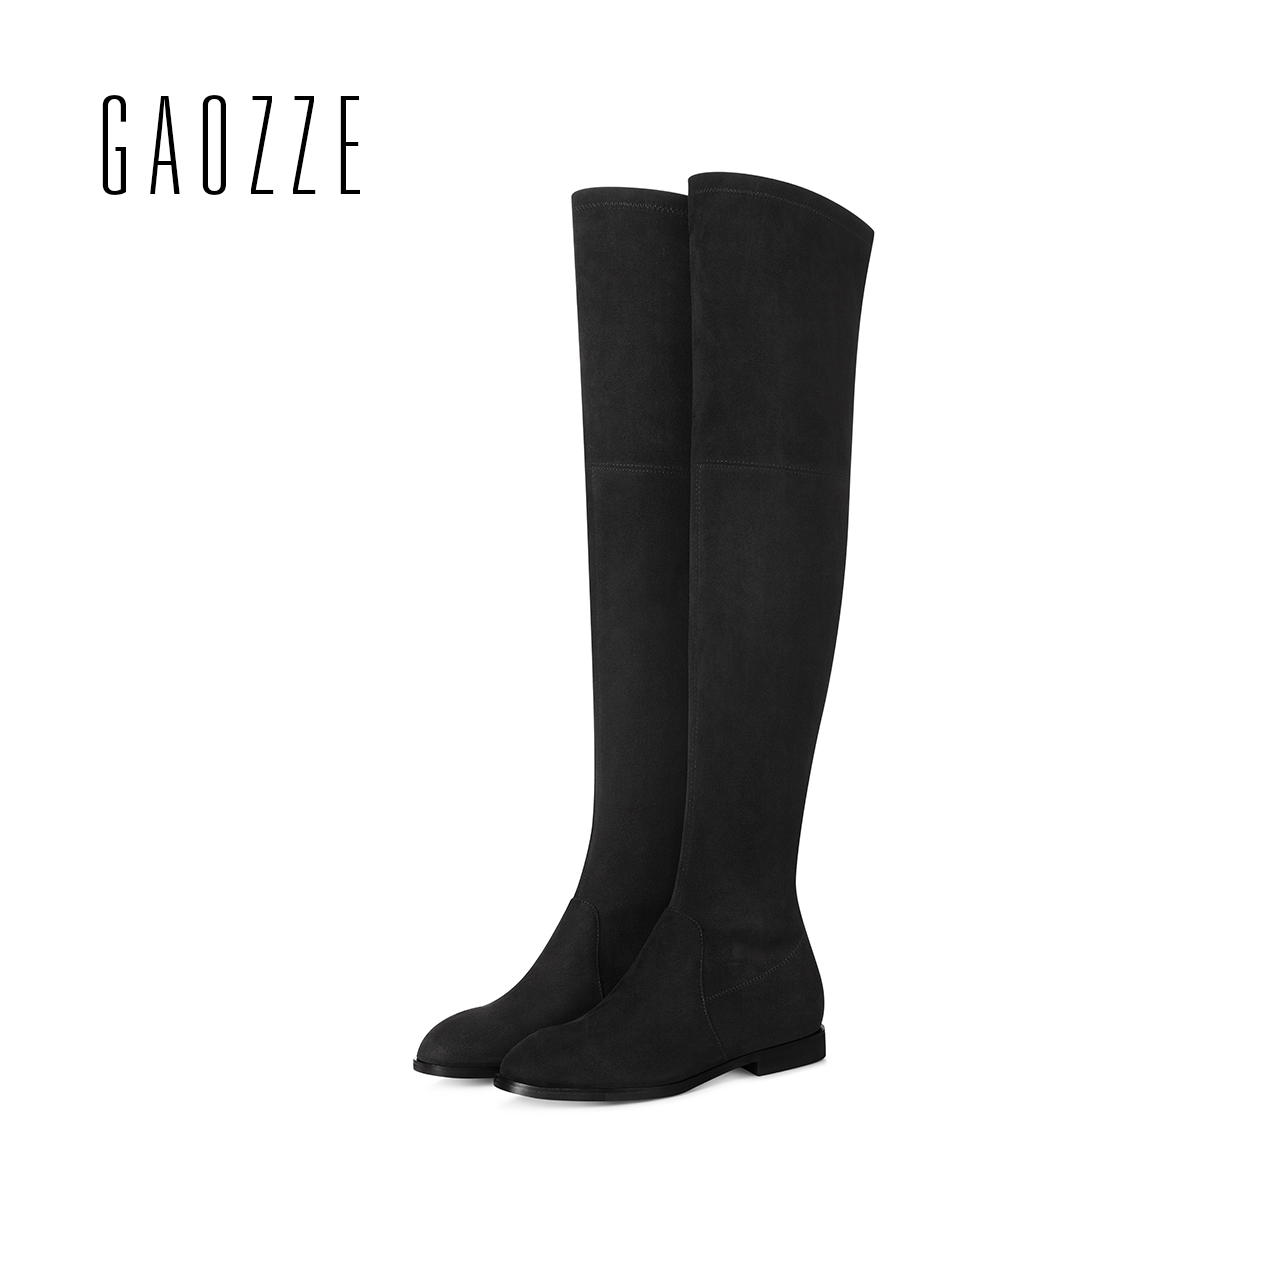 GAOZZE Sheep Suede Slim fit Boots Sexy over the knee high women flat snow boots women's fashion winter flat boots shoes luxury purple floral highland sheep suede boots cat out flower spring winter over the knee boots women brand shoes nancyjayjii